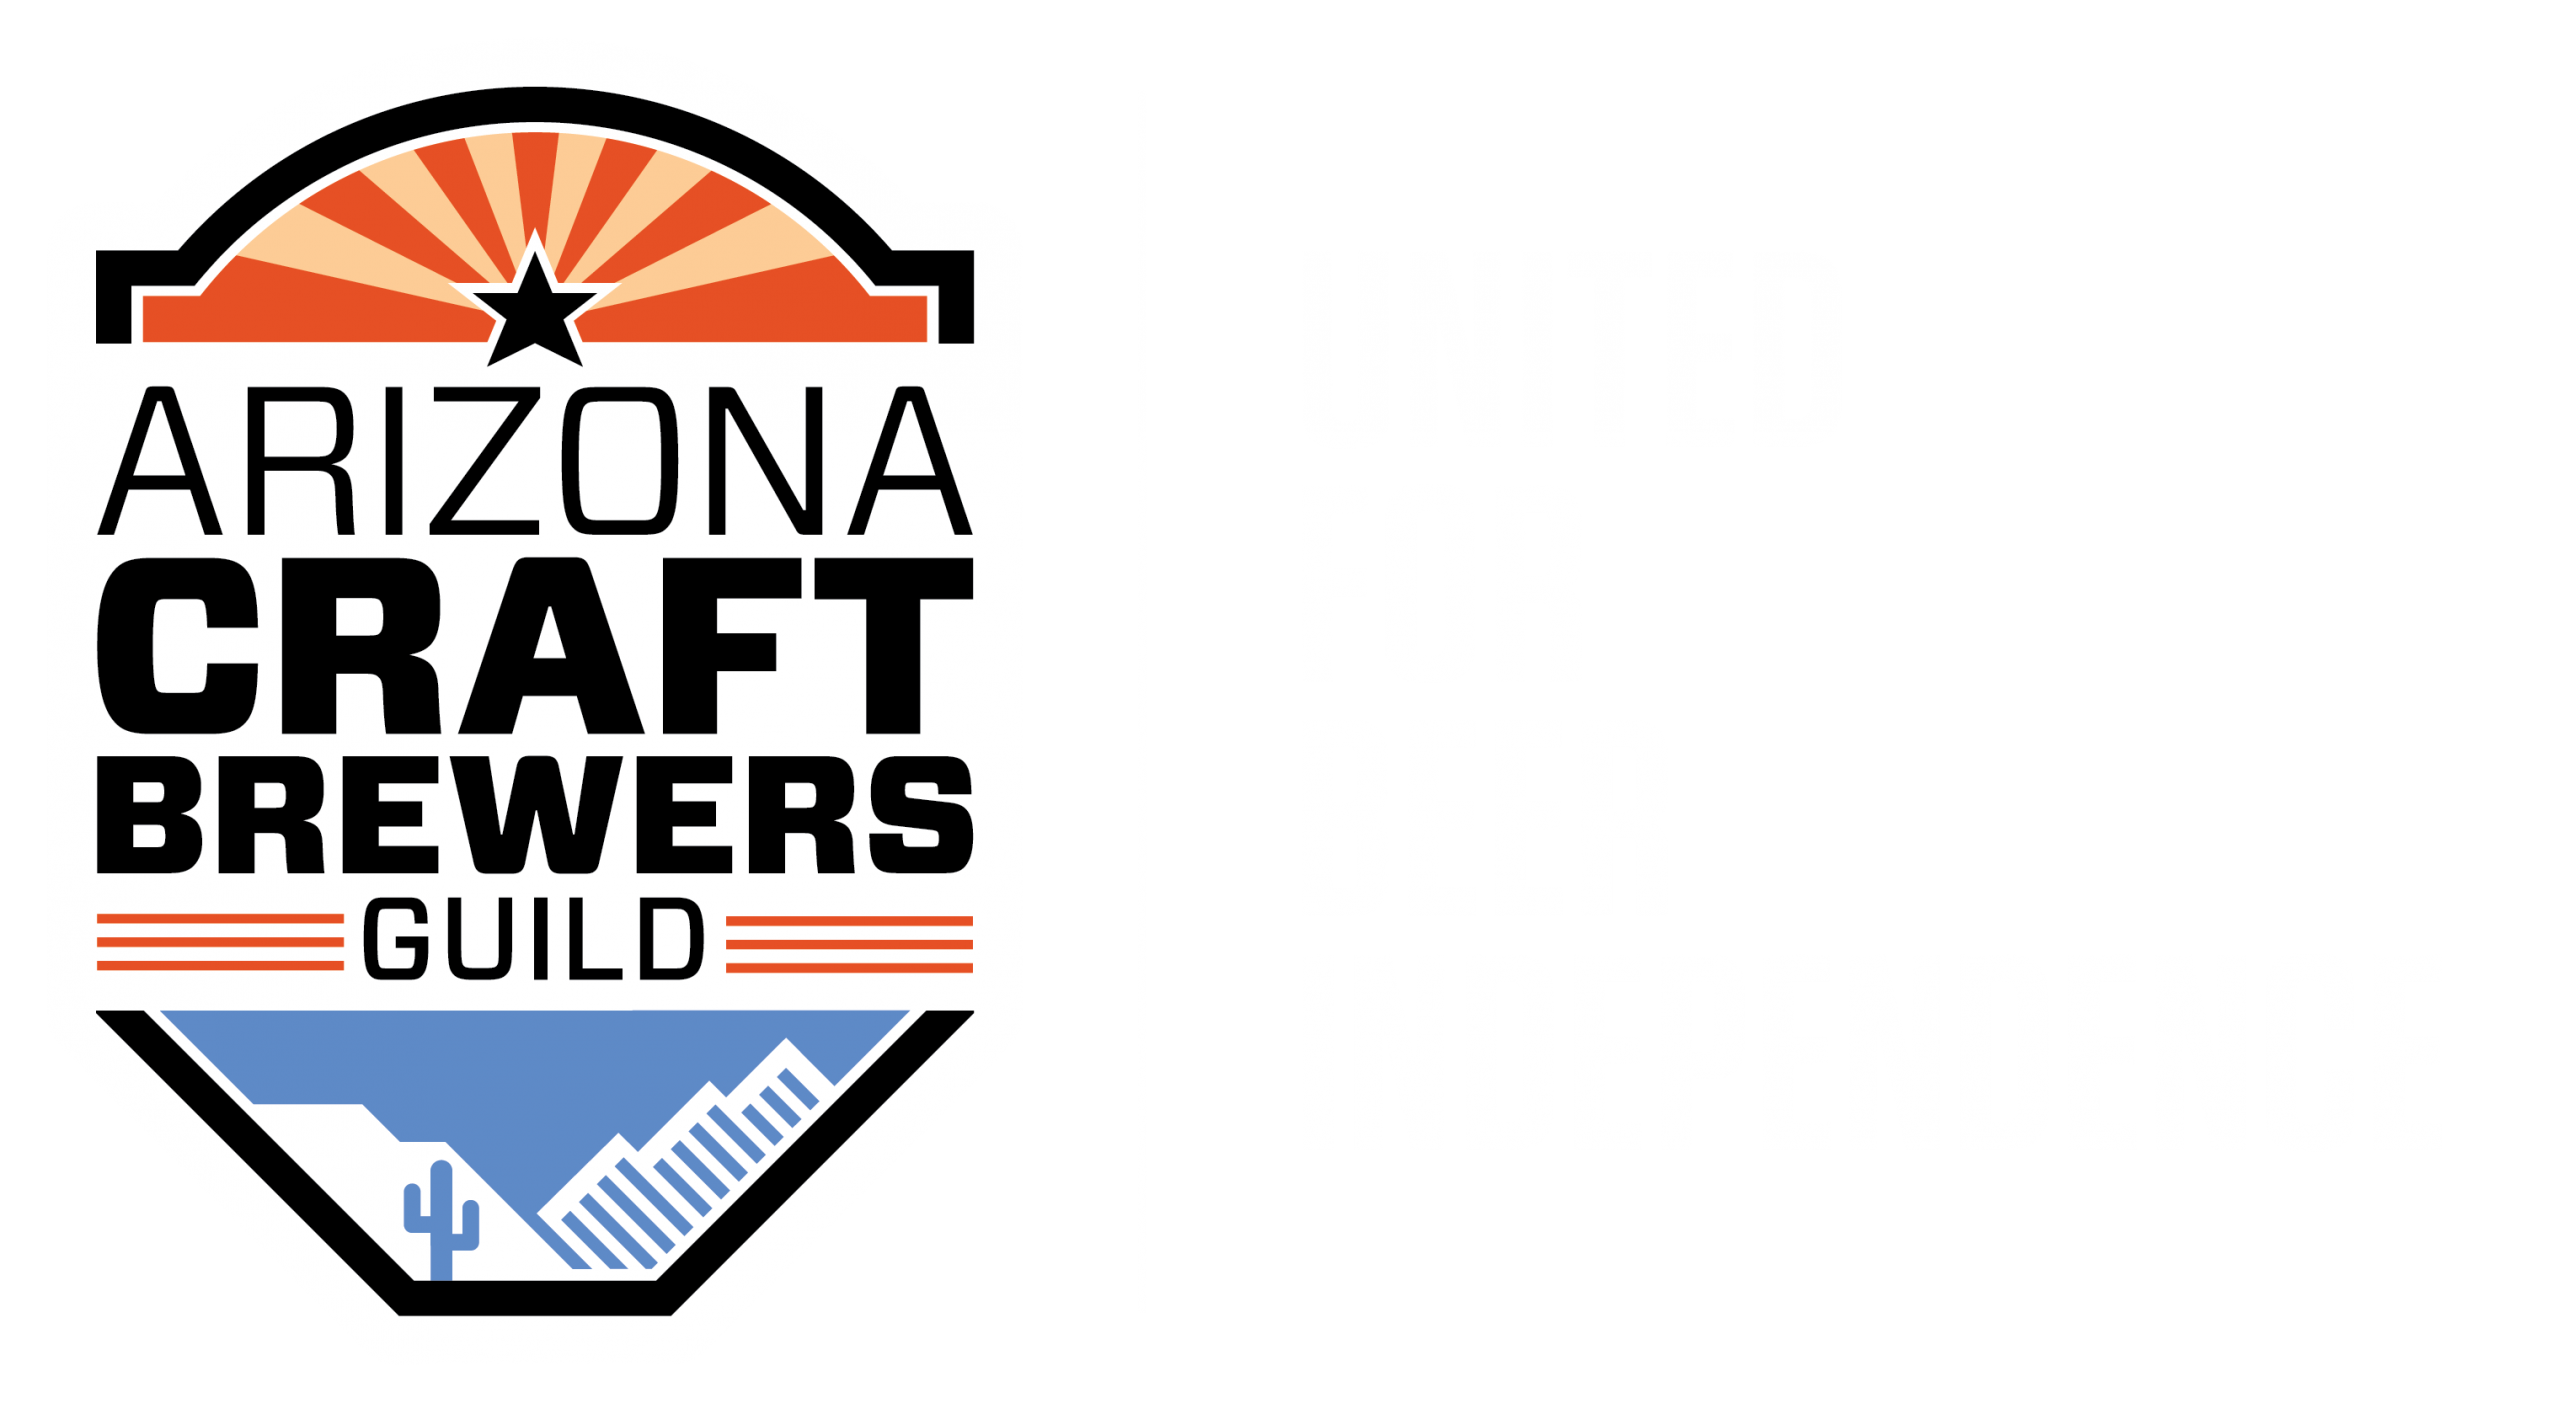 Flying Basset Brewing | Arizona Craft Brewers Guild